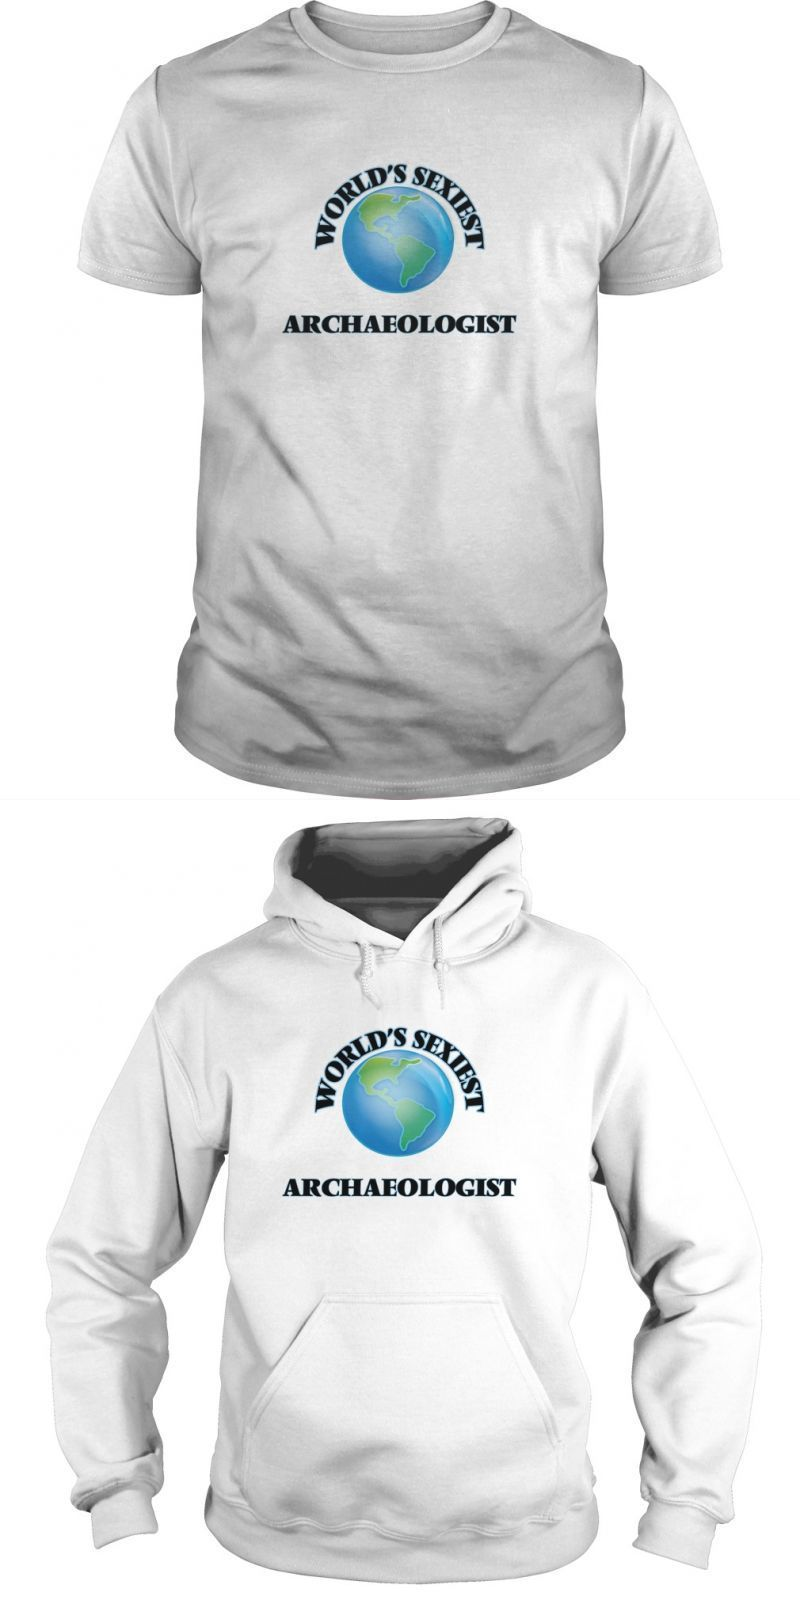 Get This Archaeologist Tshirt For You Or Someone You Love Please